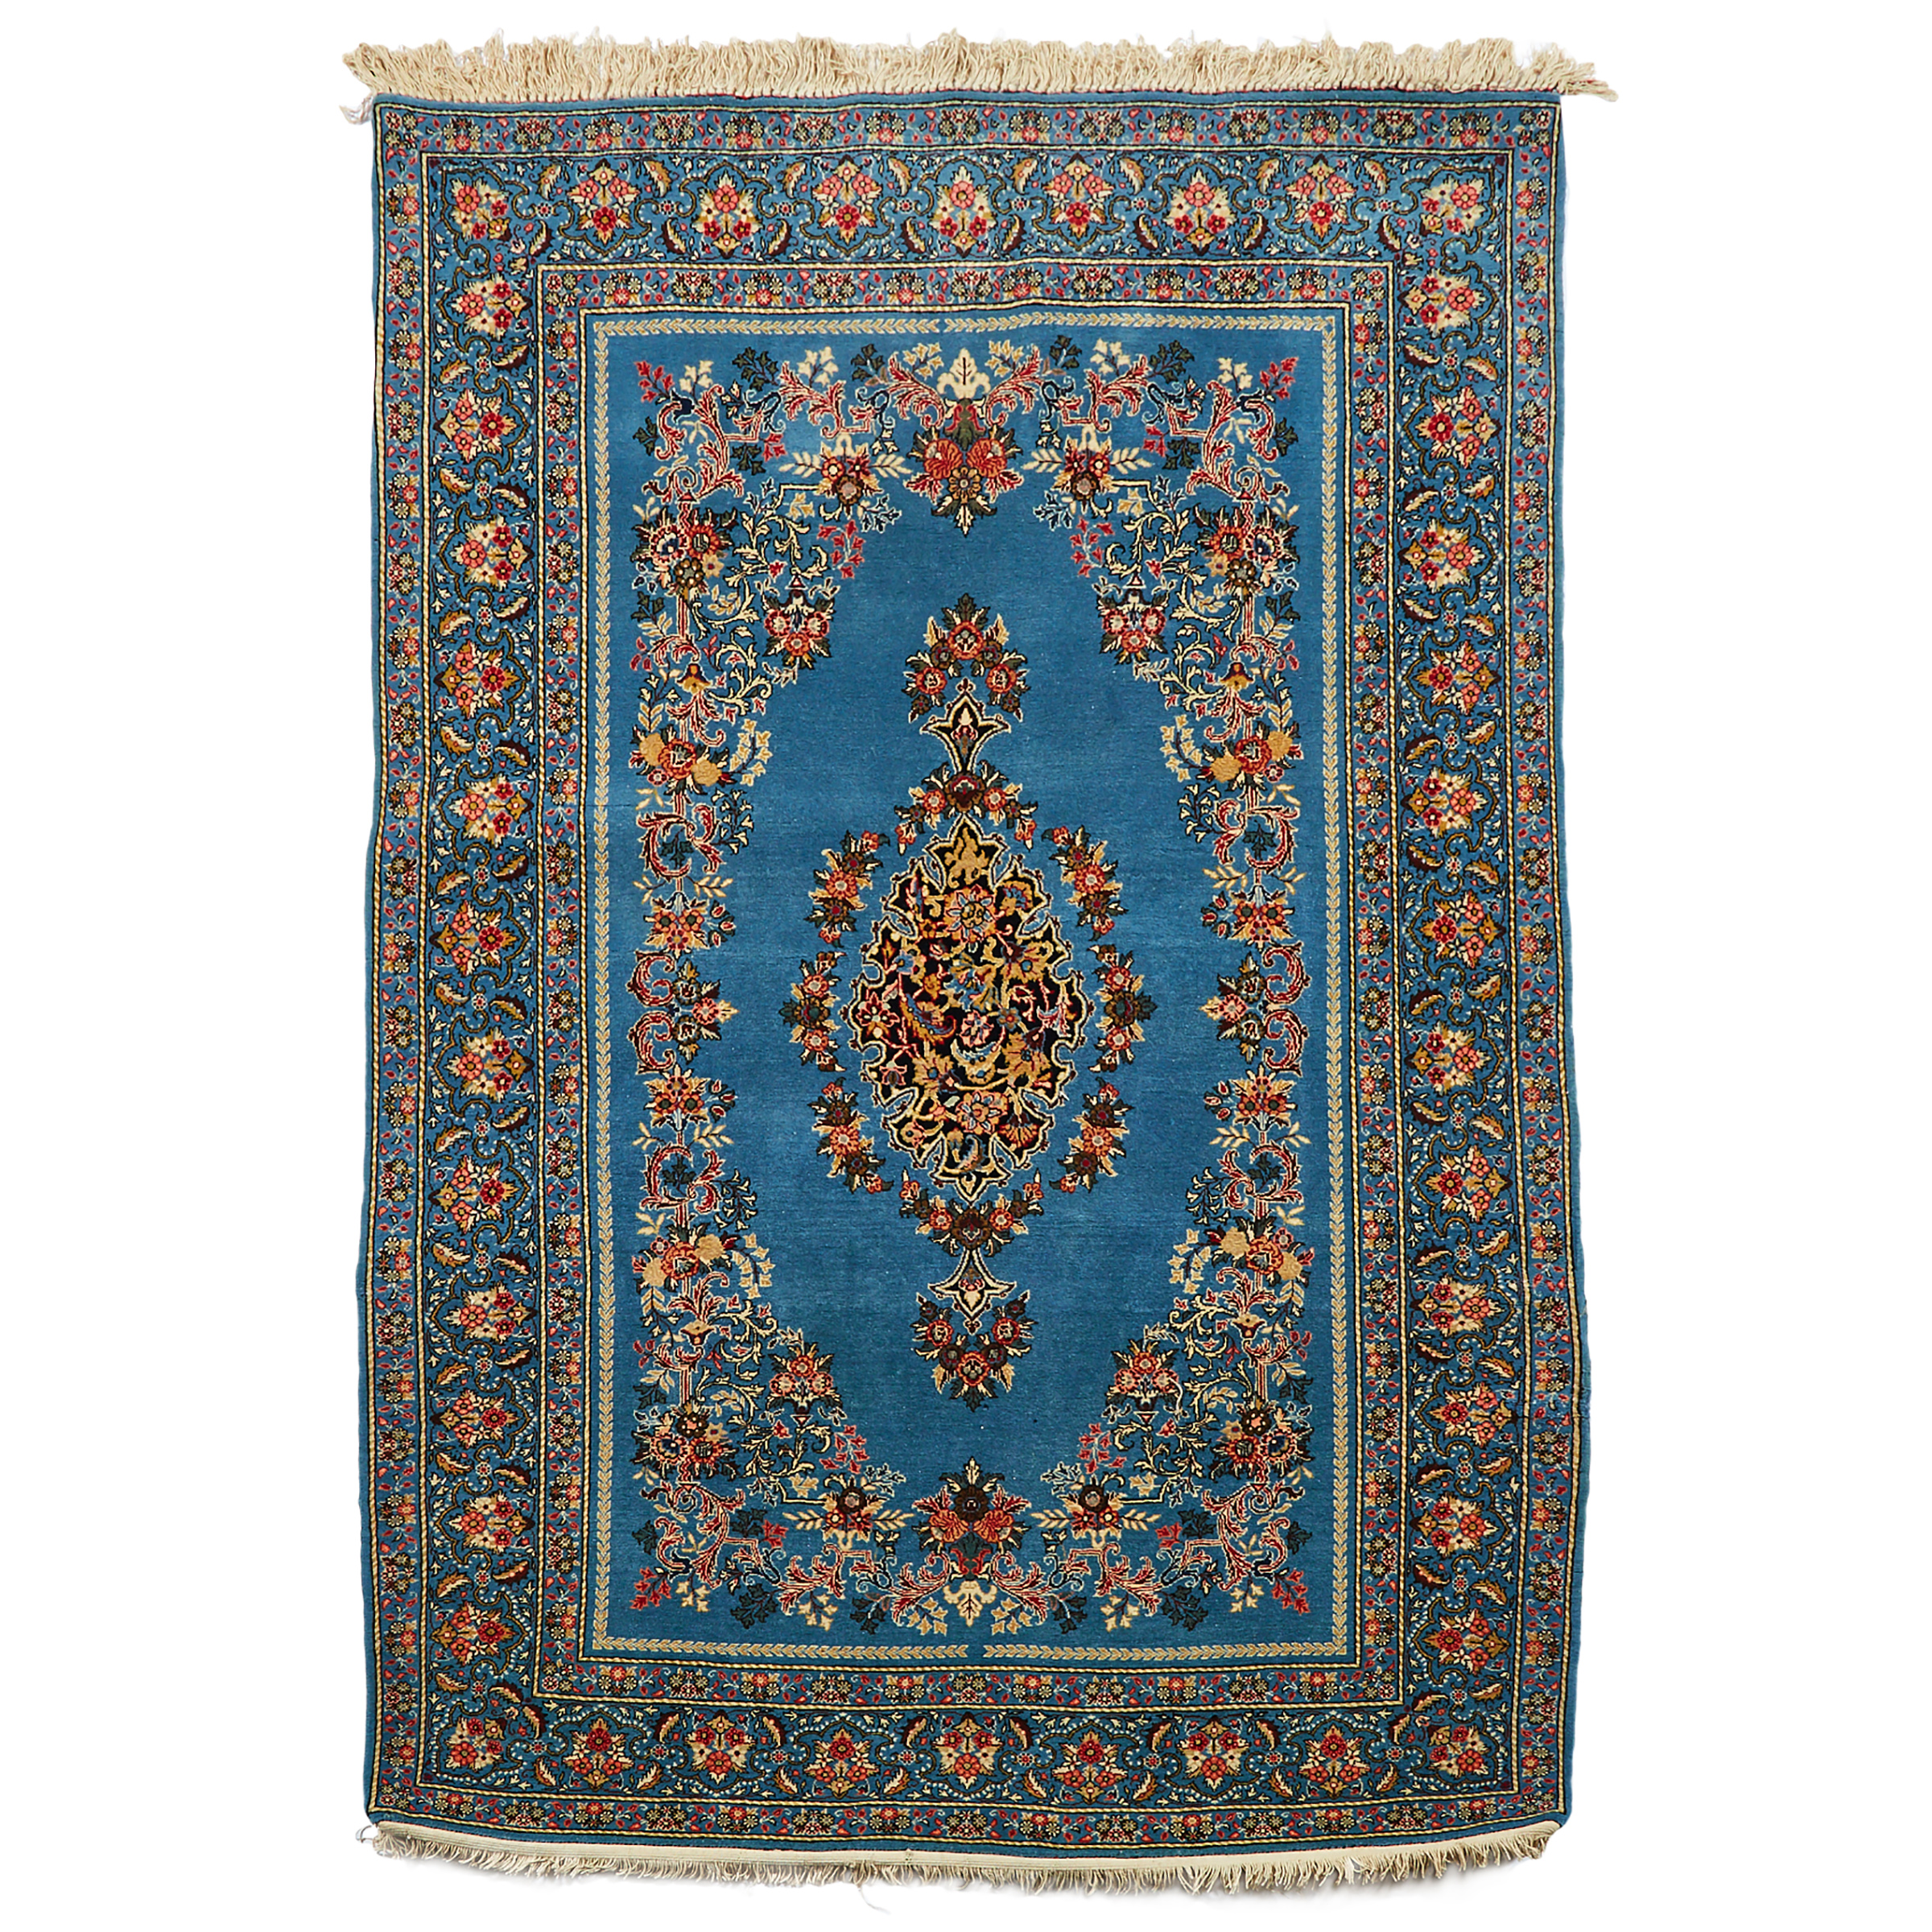 Kerman Rug, Persian, mid to late 20th century